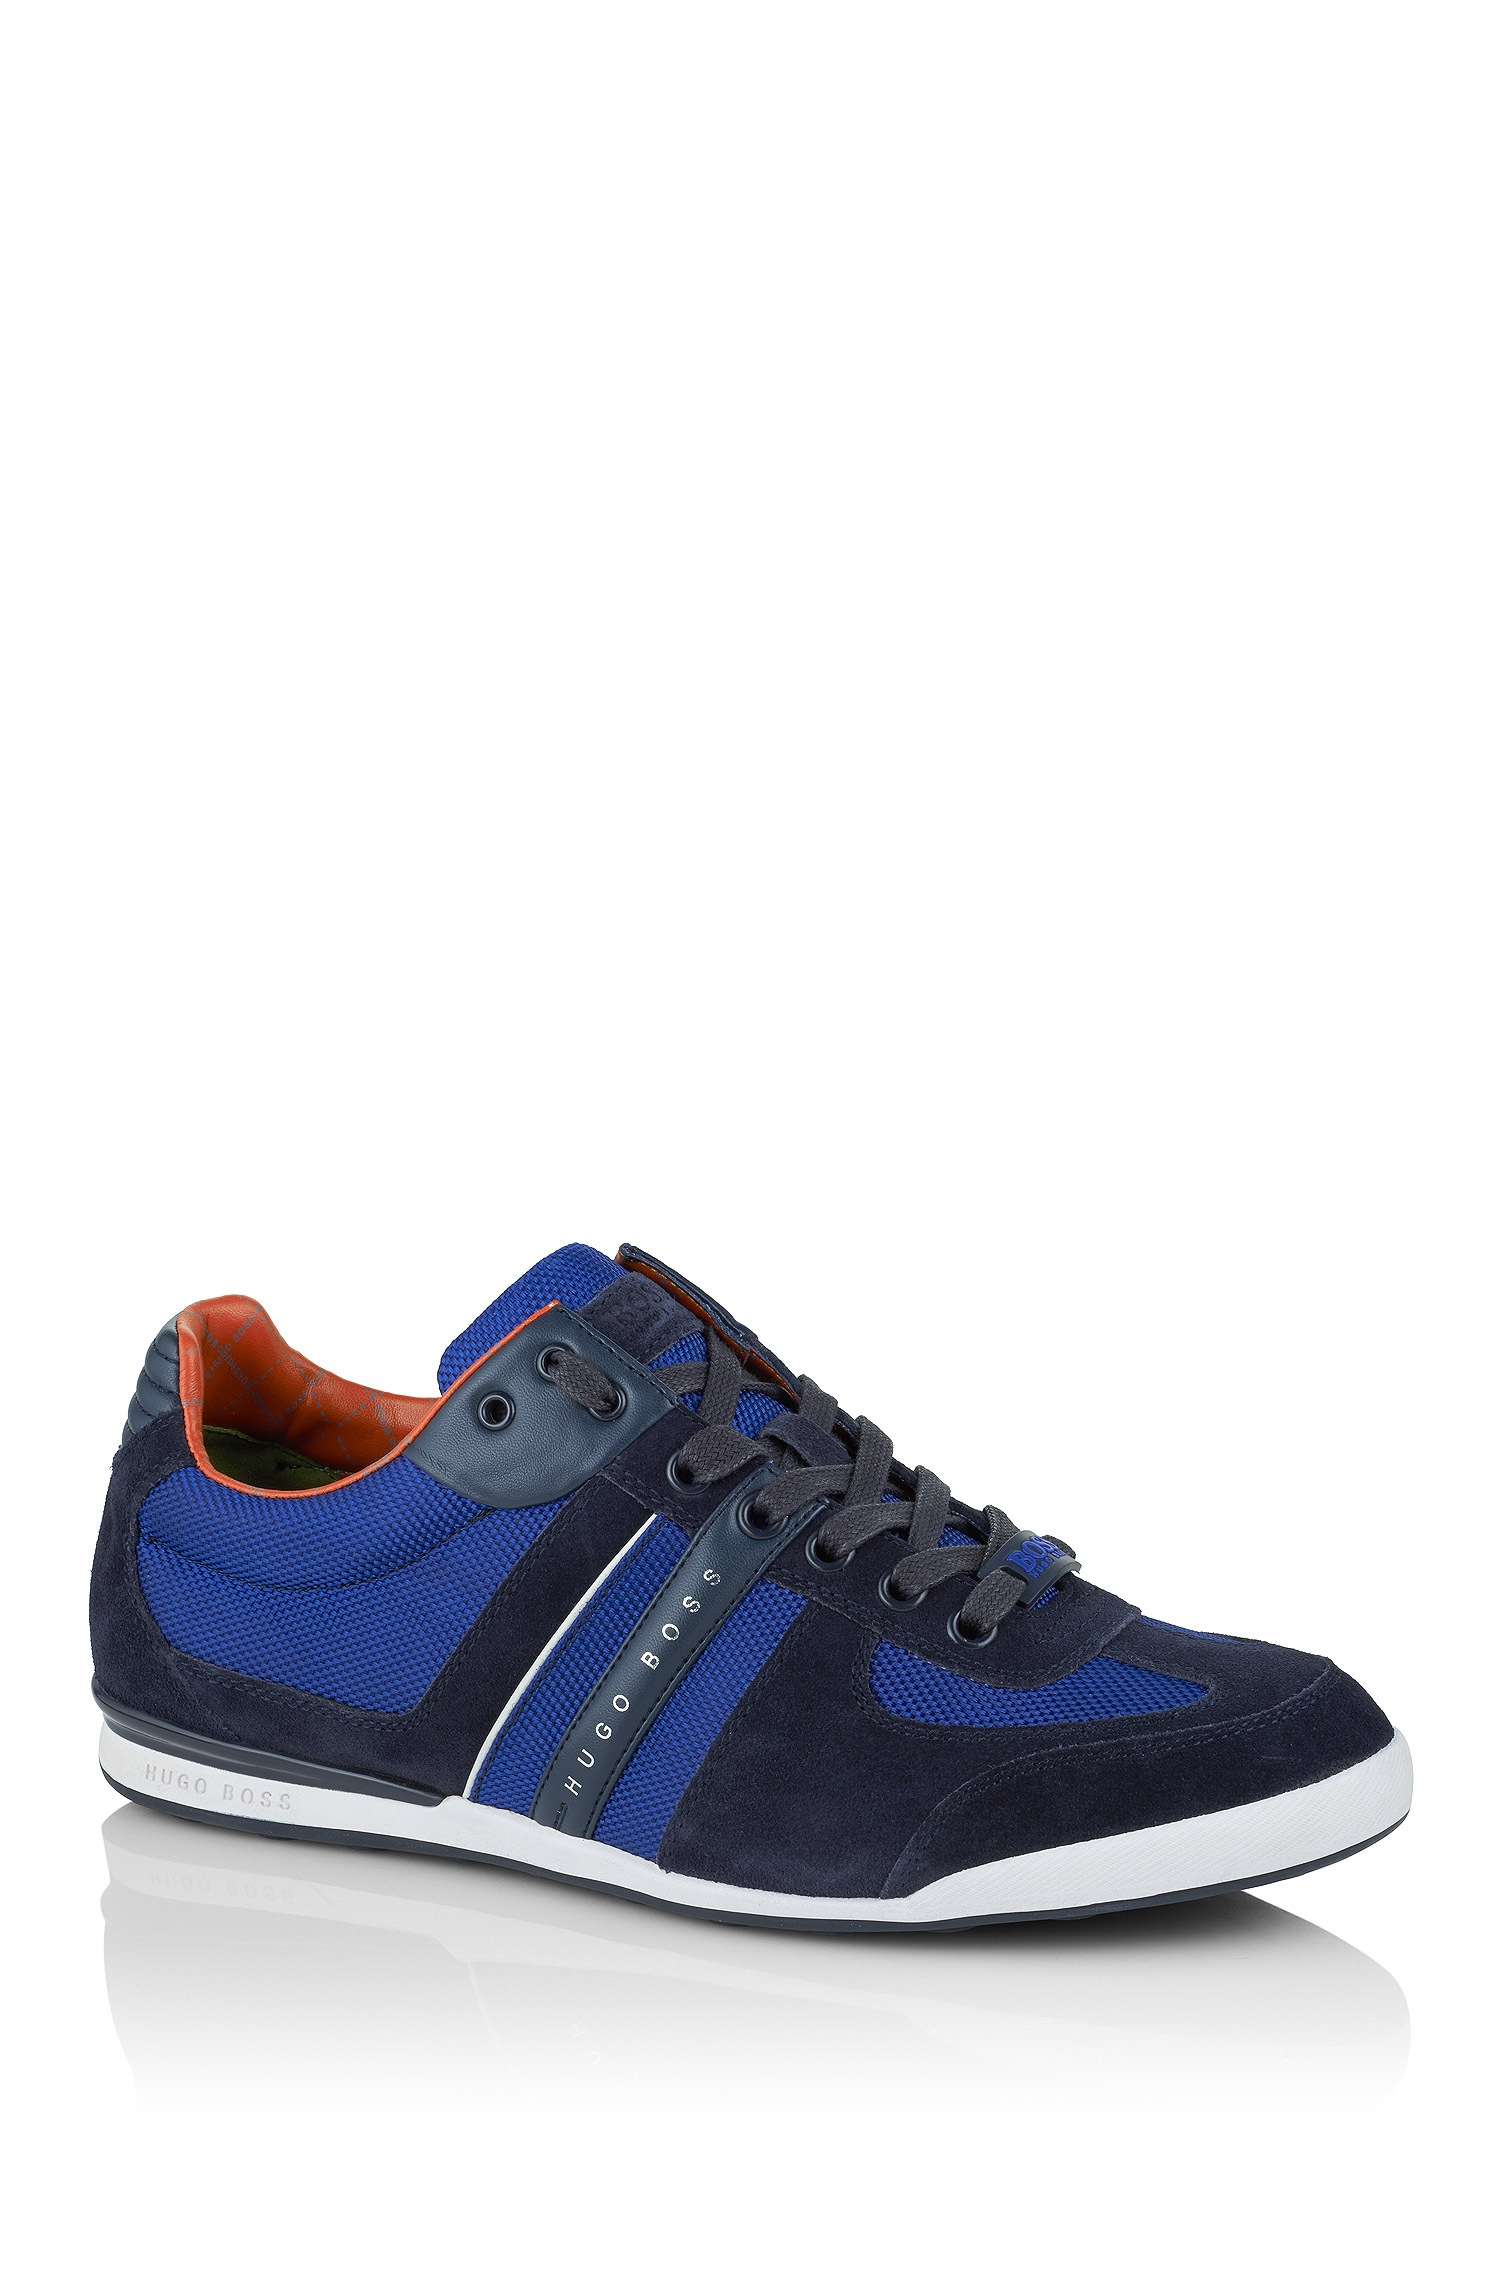 boss green sneakers 39 akeen 39 in textile with suede in blue for men lyst. Black Bedroom Furniture Sets. Home Design Ideas